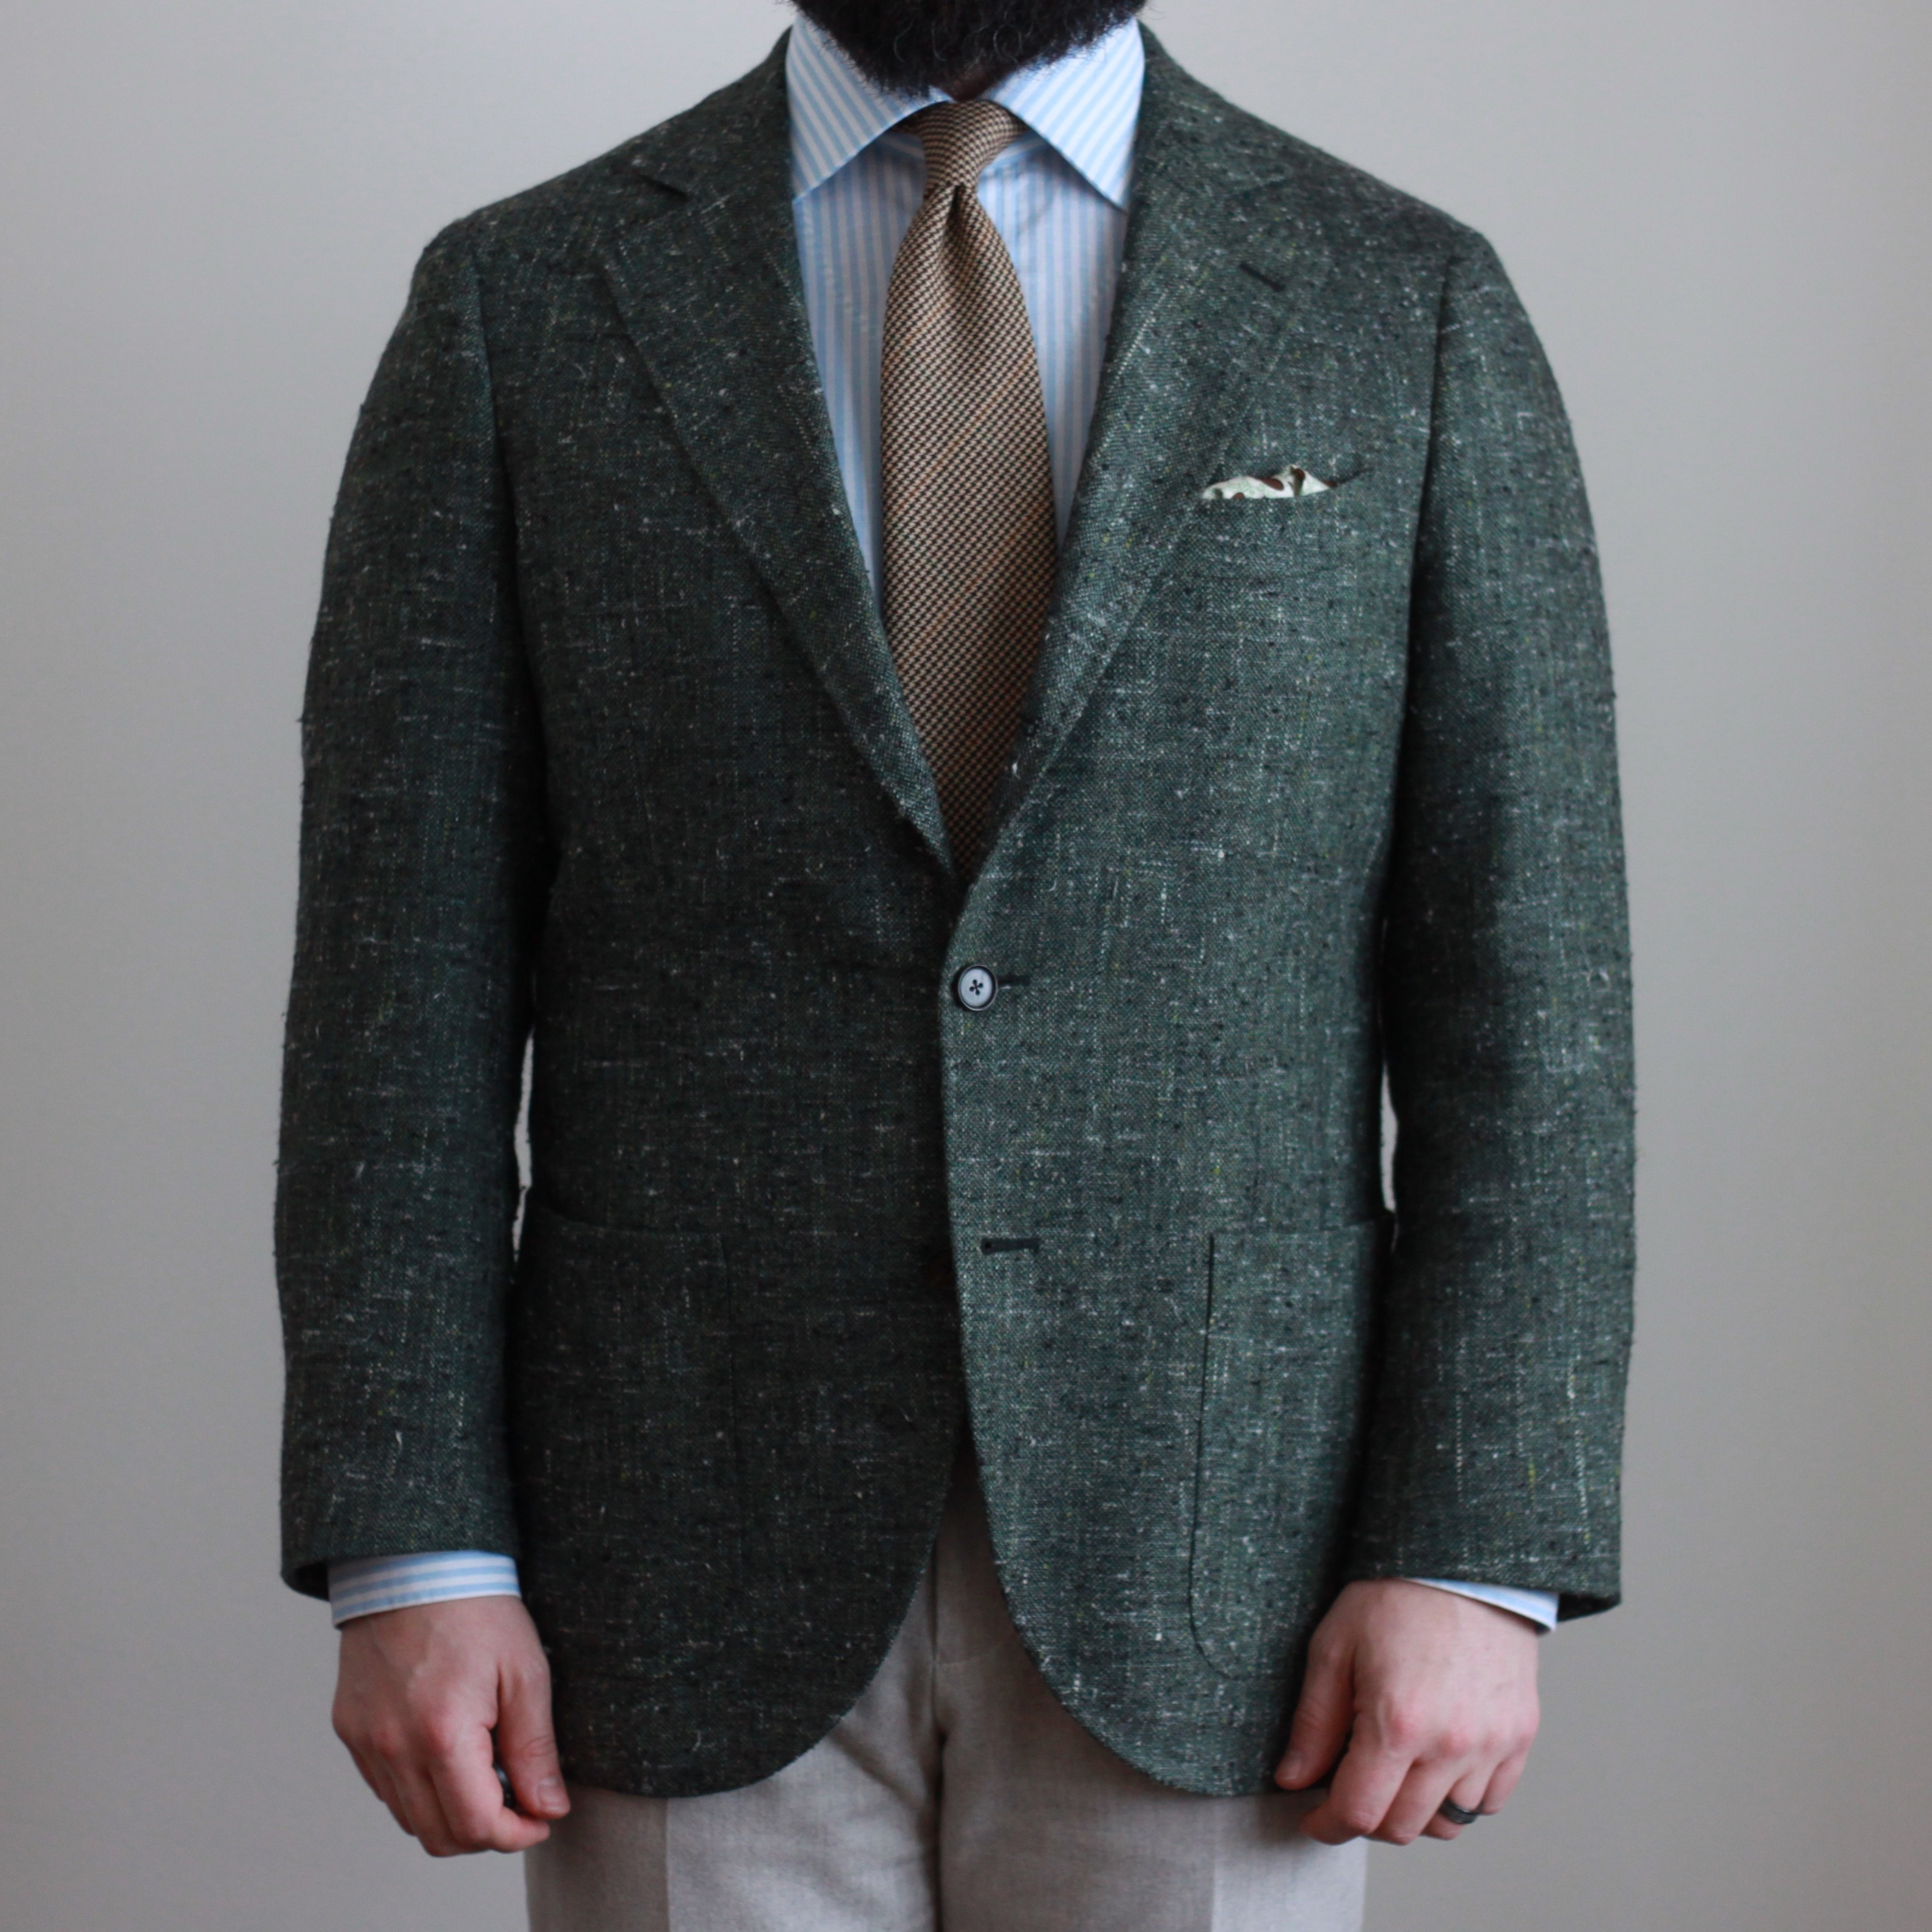 green slub, E Thomas, odd jacket, sport coat, flannel trousers, brown tie, blue stripe shirt